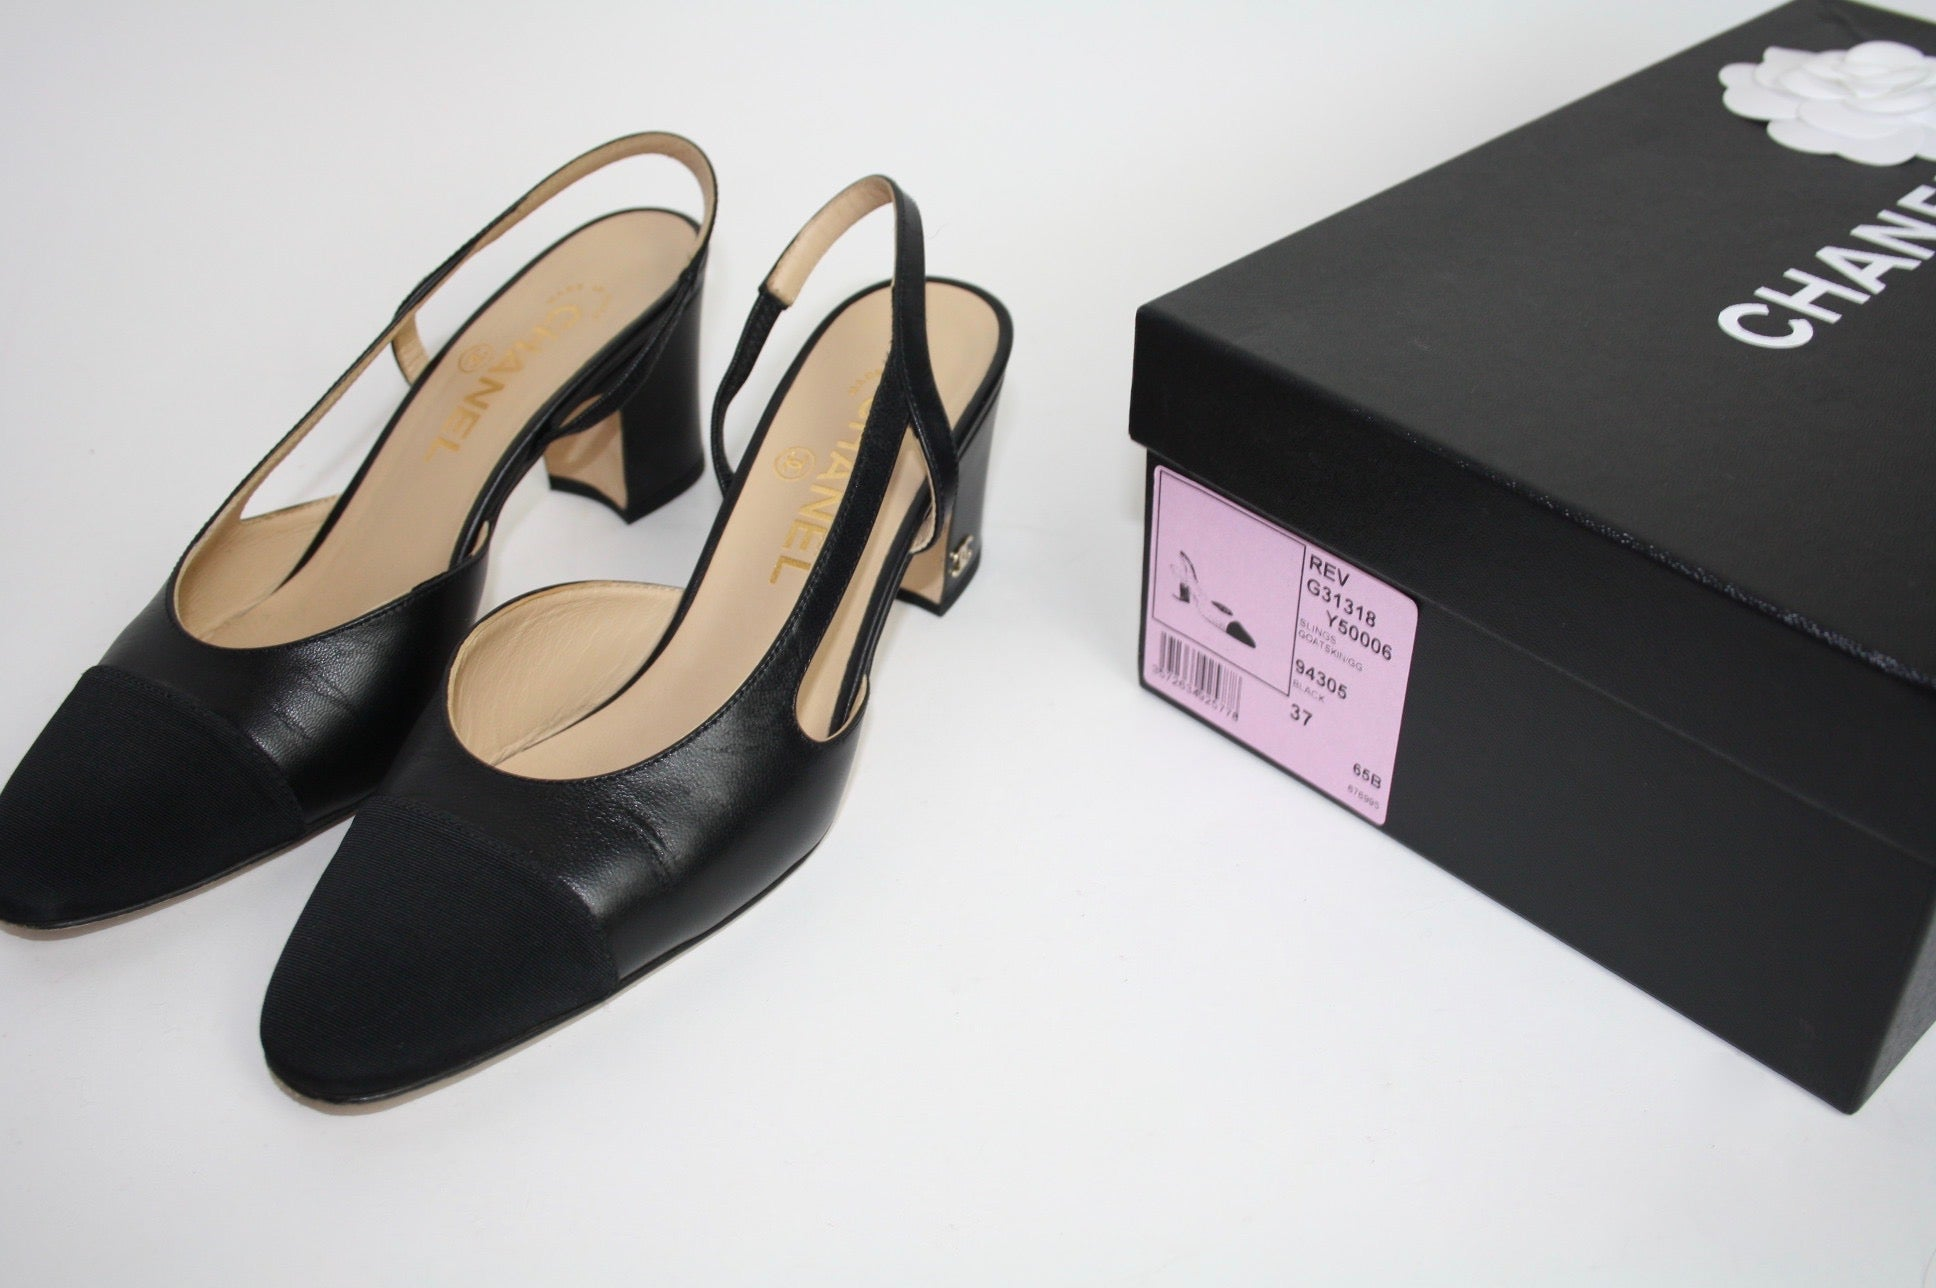 Chanel Sling-back, 37 - Iconics Preloved Luxury